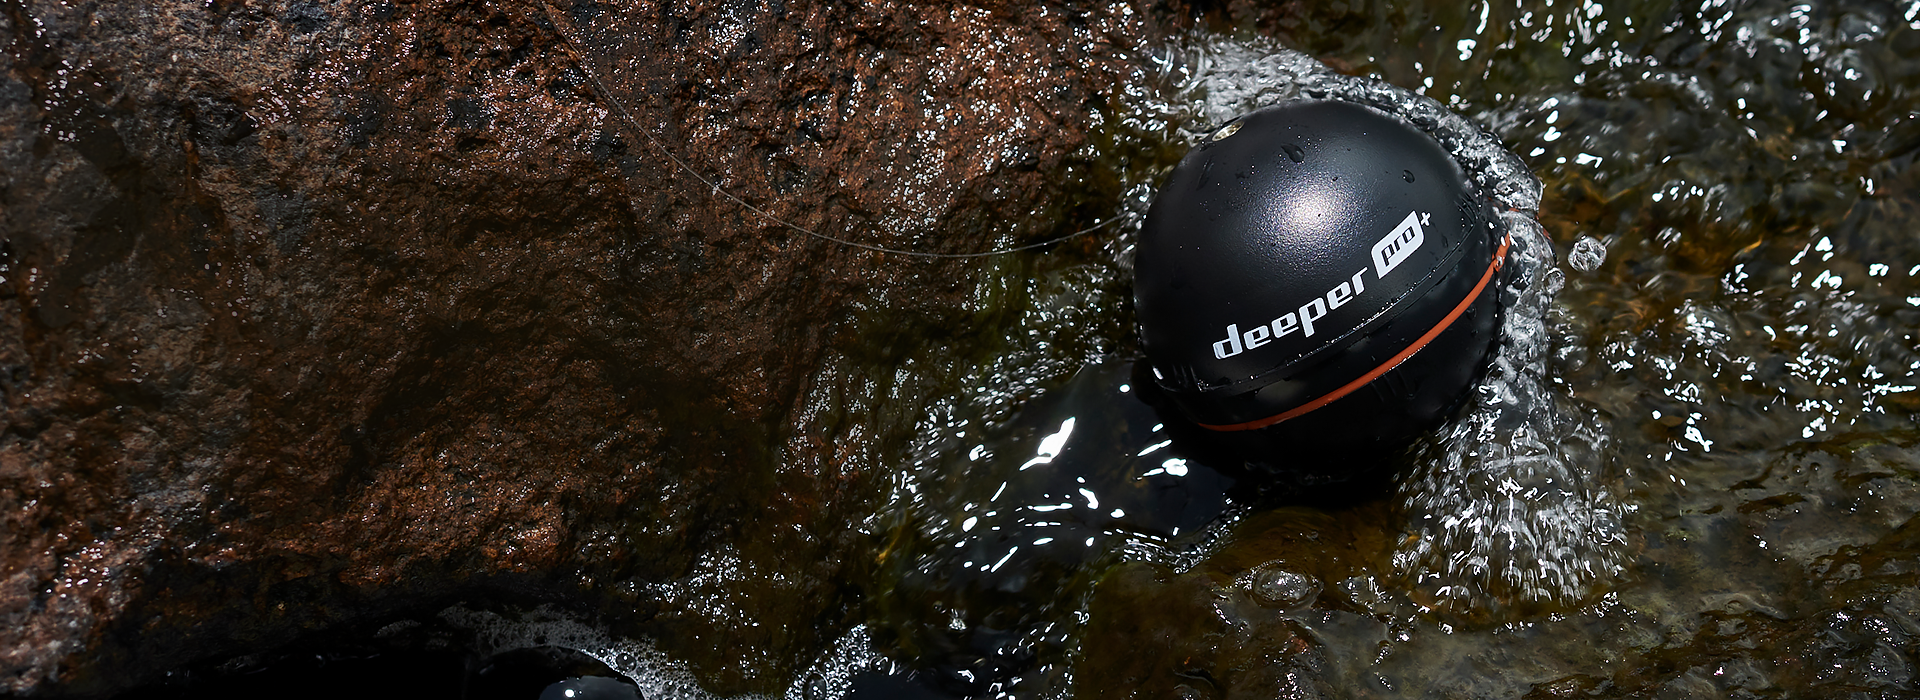 Be prepared for the next fishing wave!Get yourself Deeper sonar from $249.99